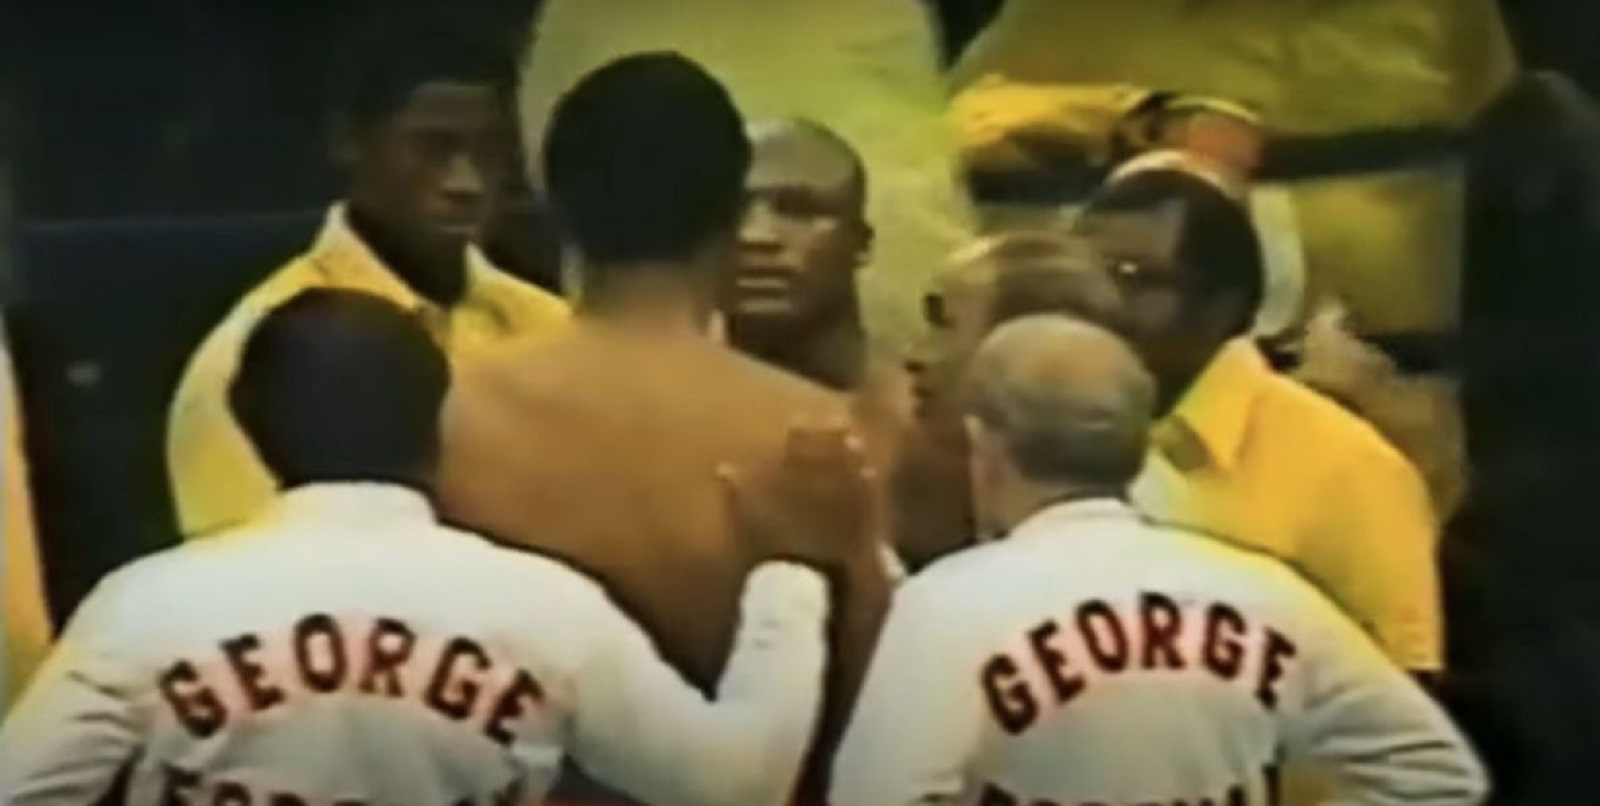 George Foreman On The Moments Before Frazier 2 Fight